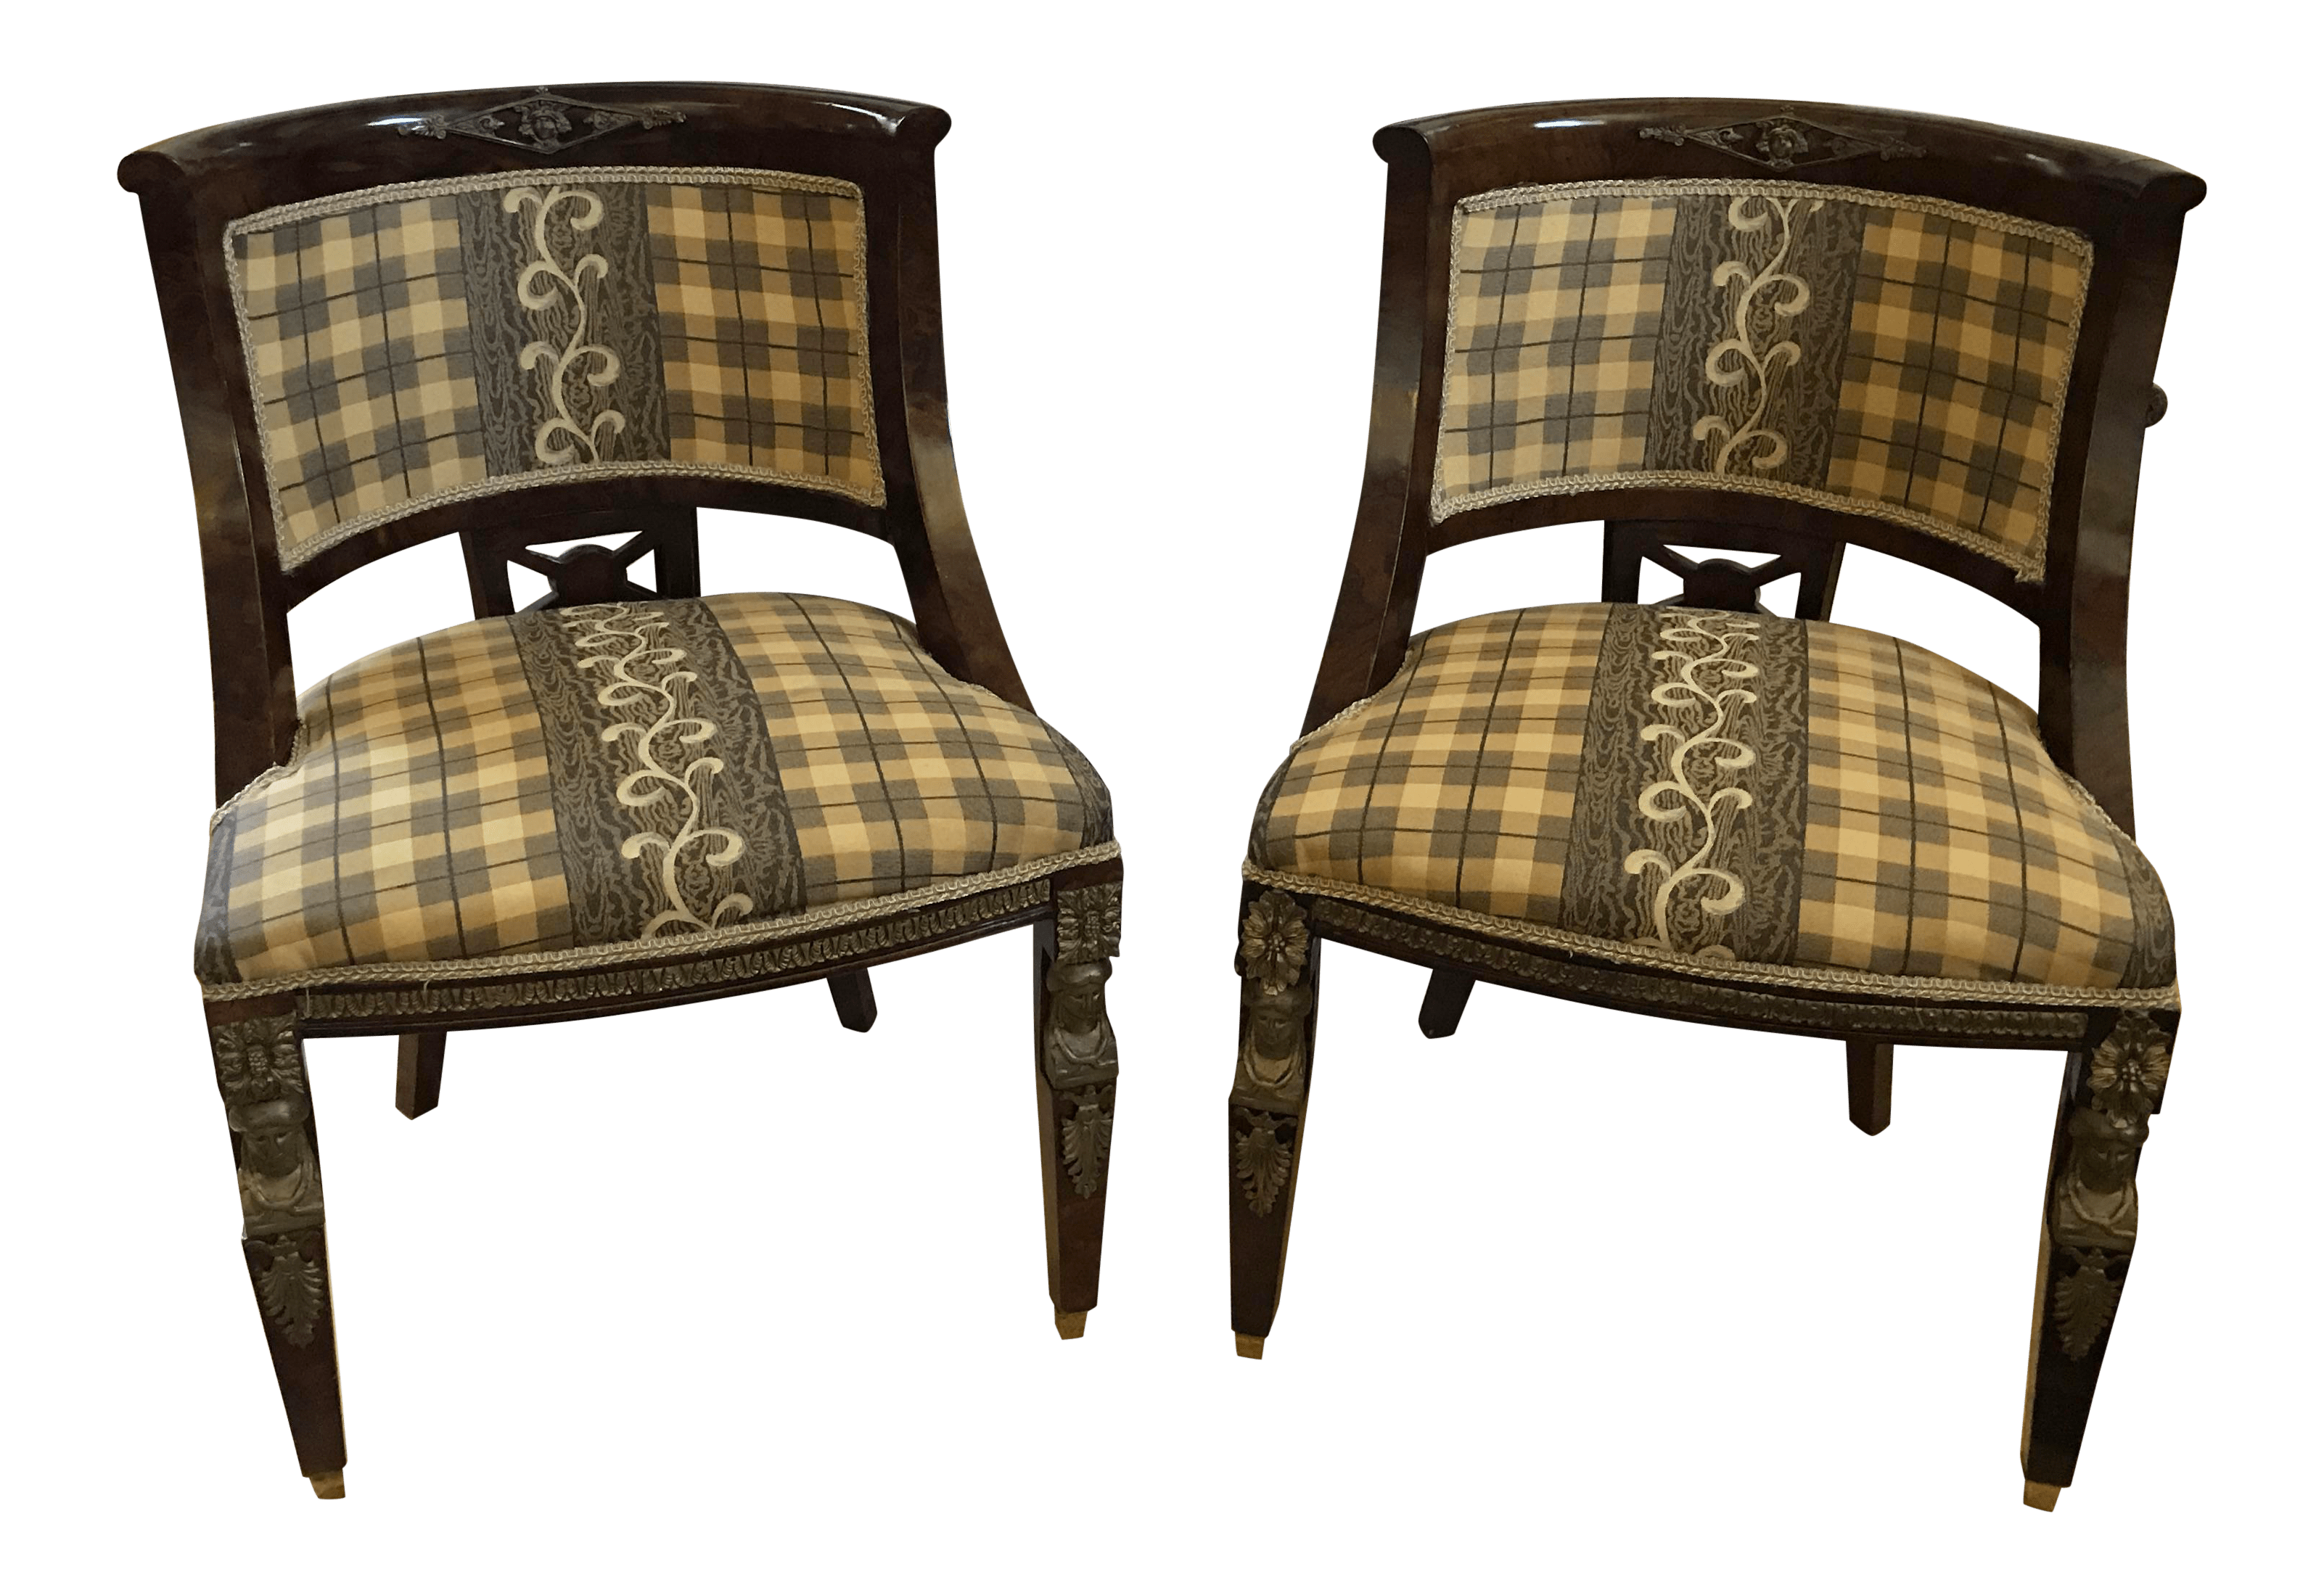 Plaid Chair European Antique Style Plaid Chairs A Pair Chairish